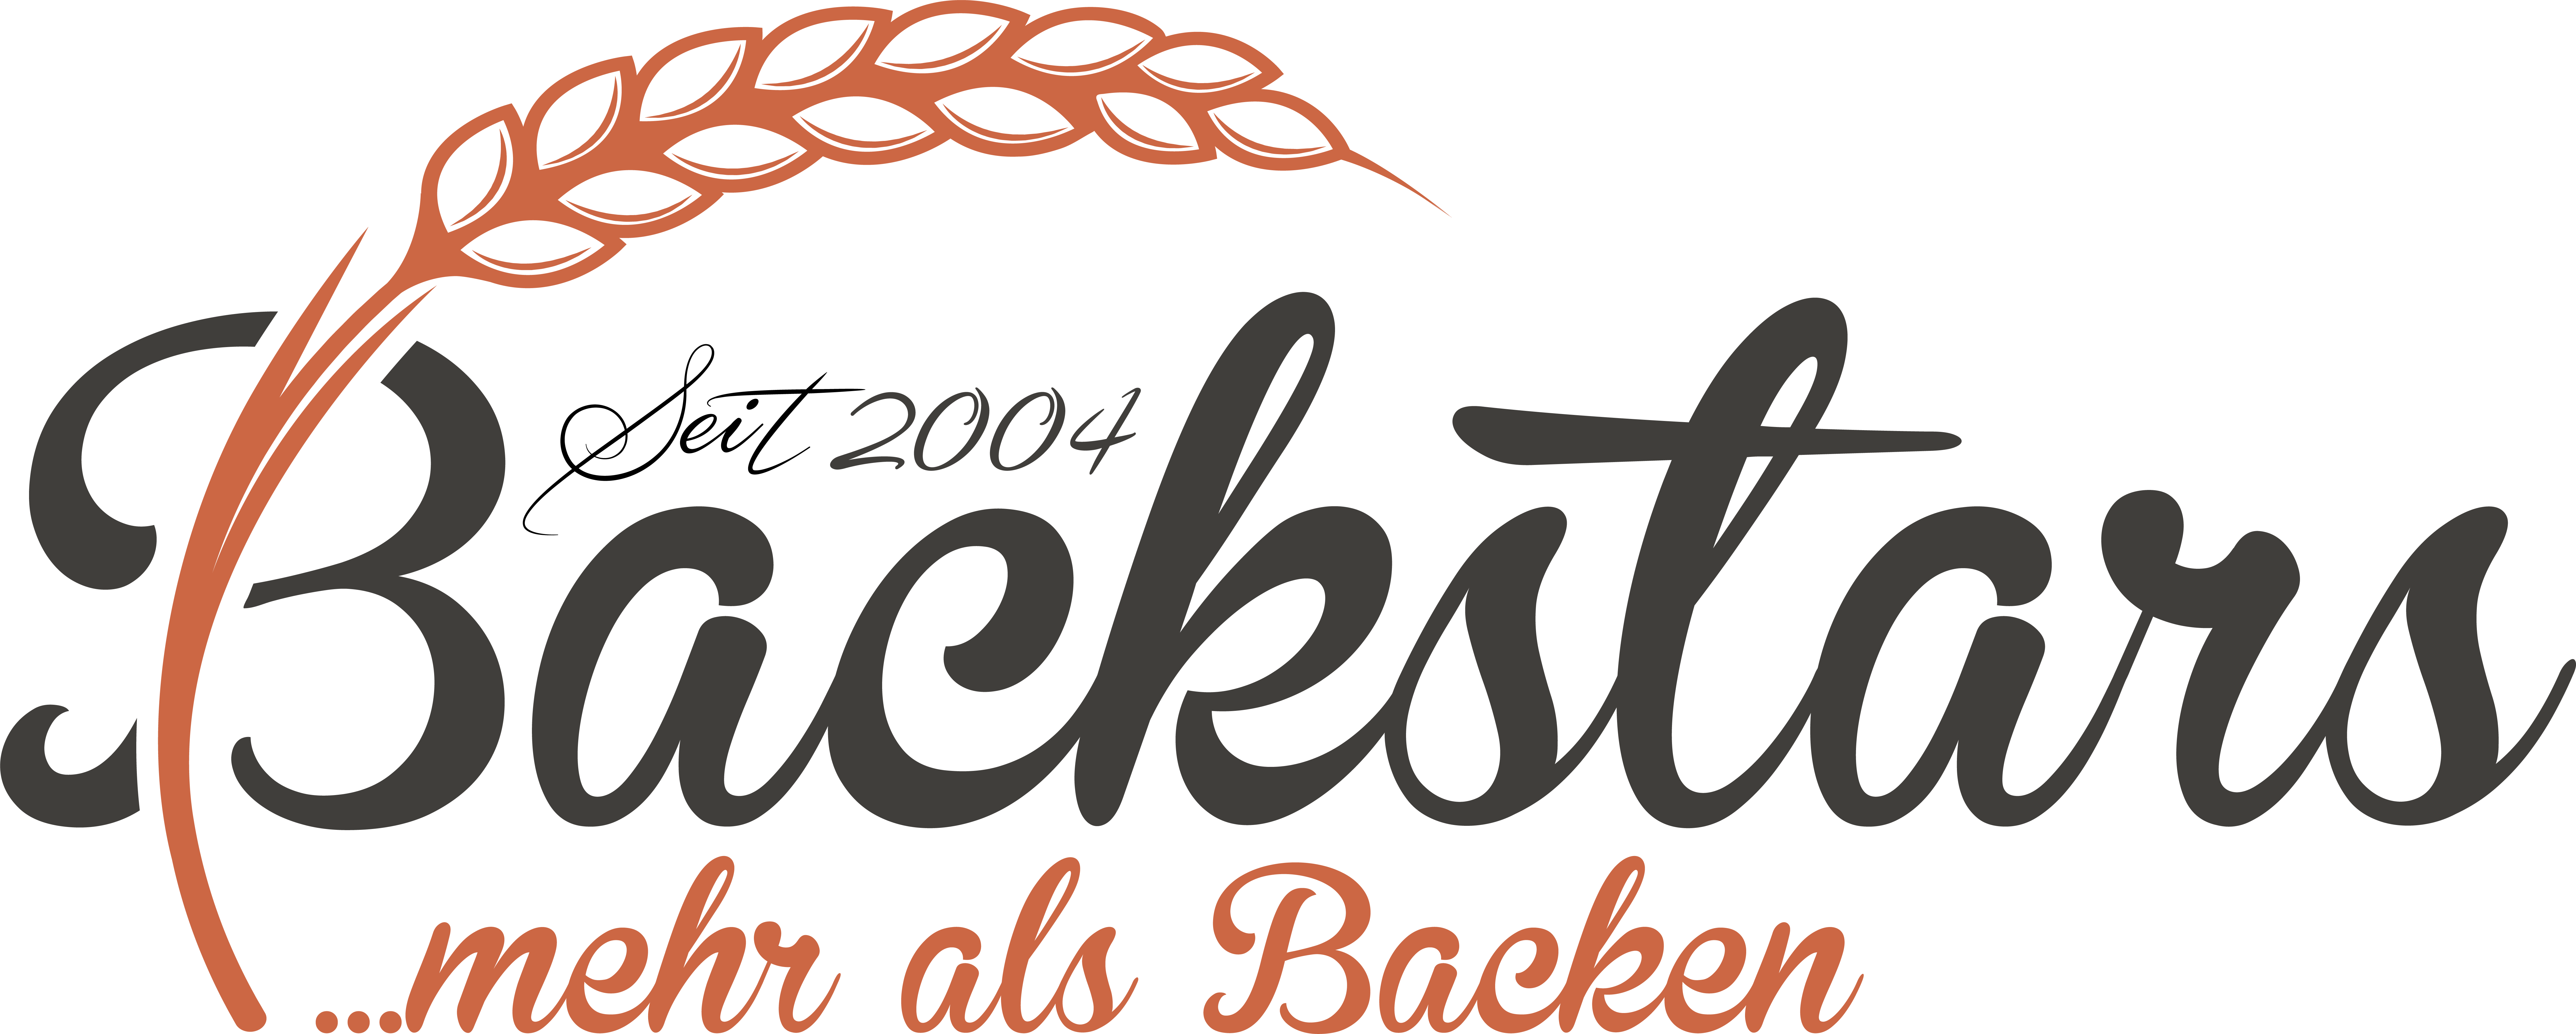 Backstars.de | Mehr als Backen